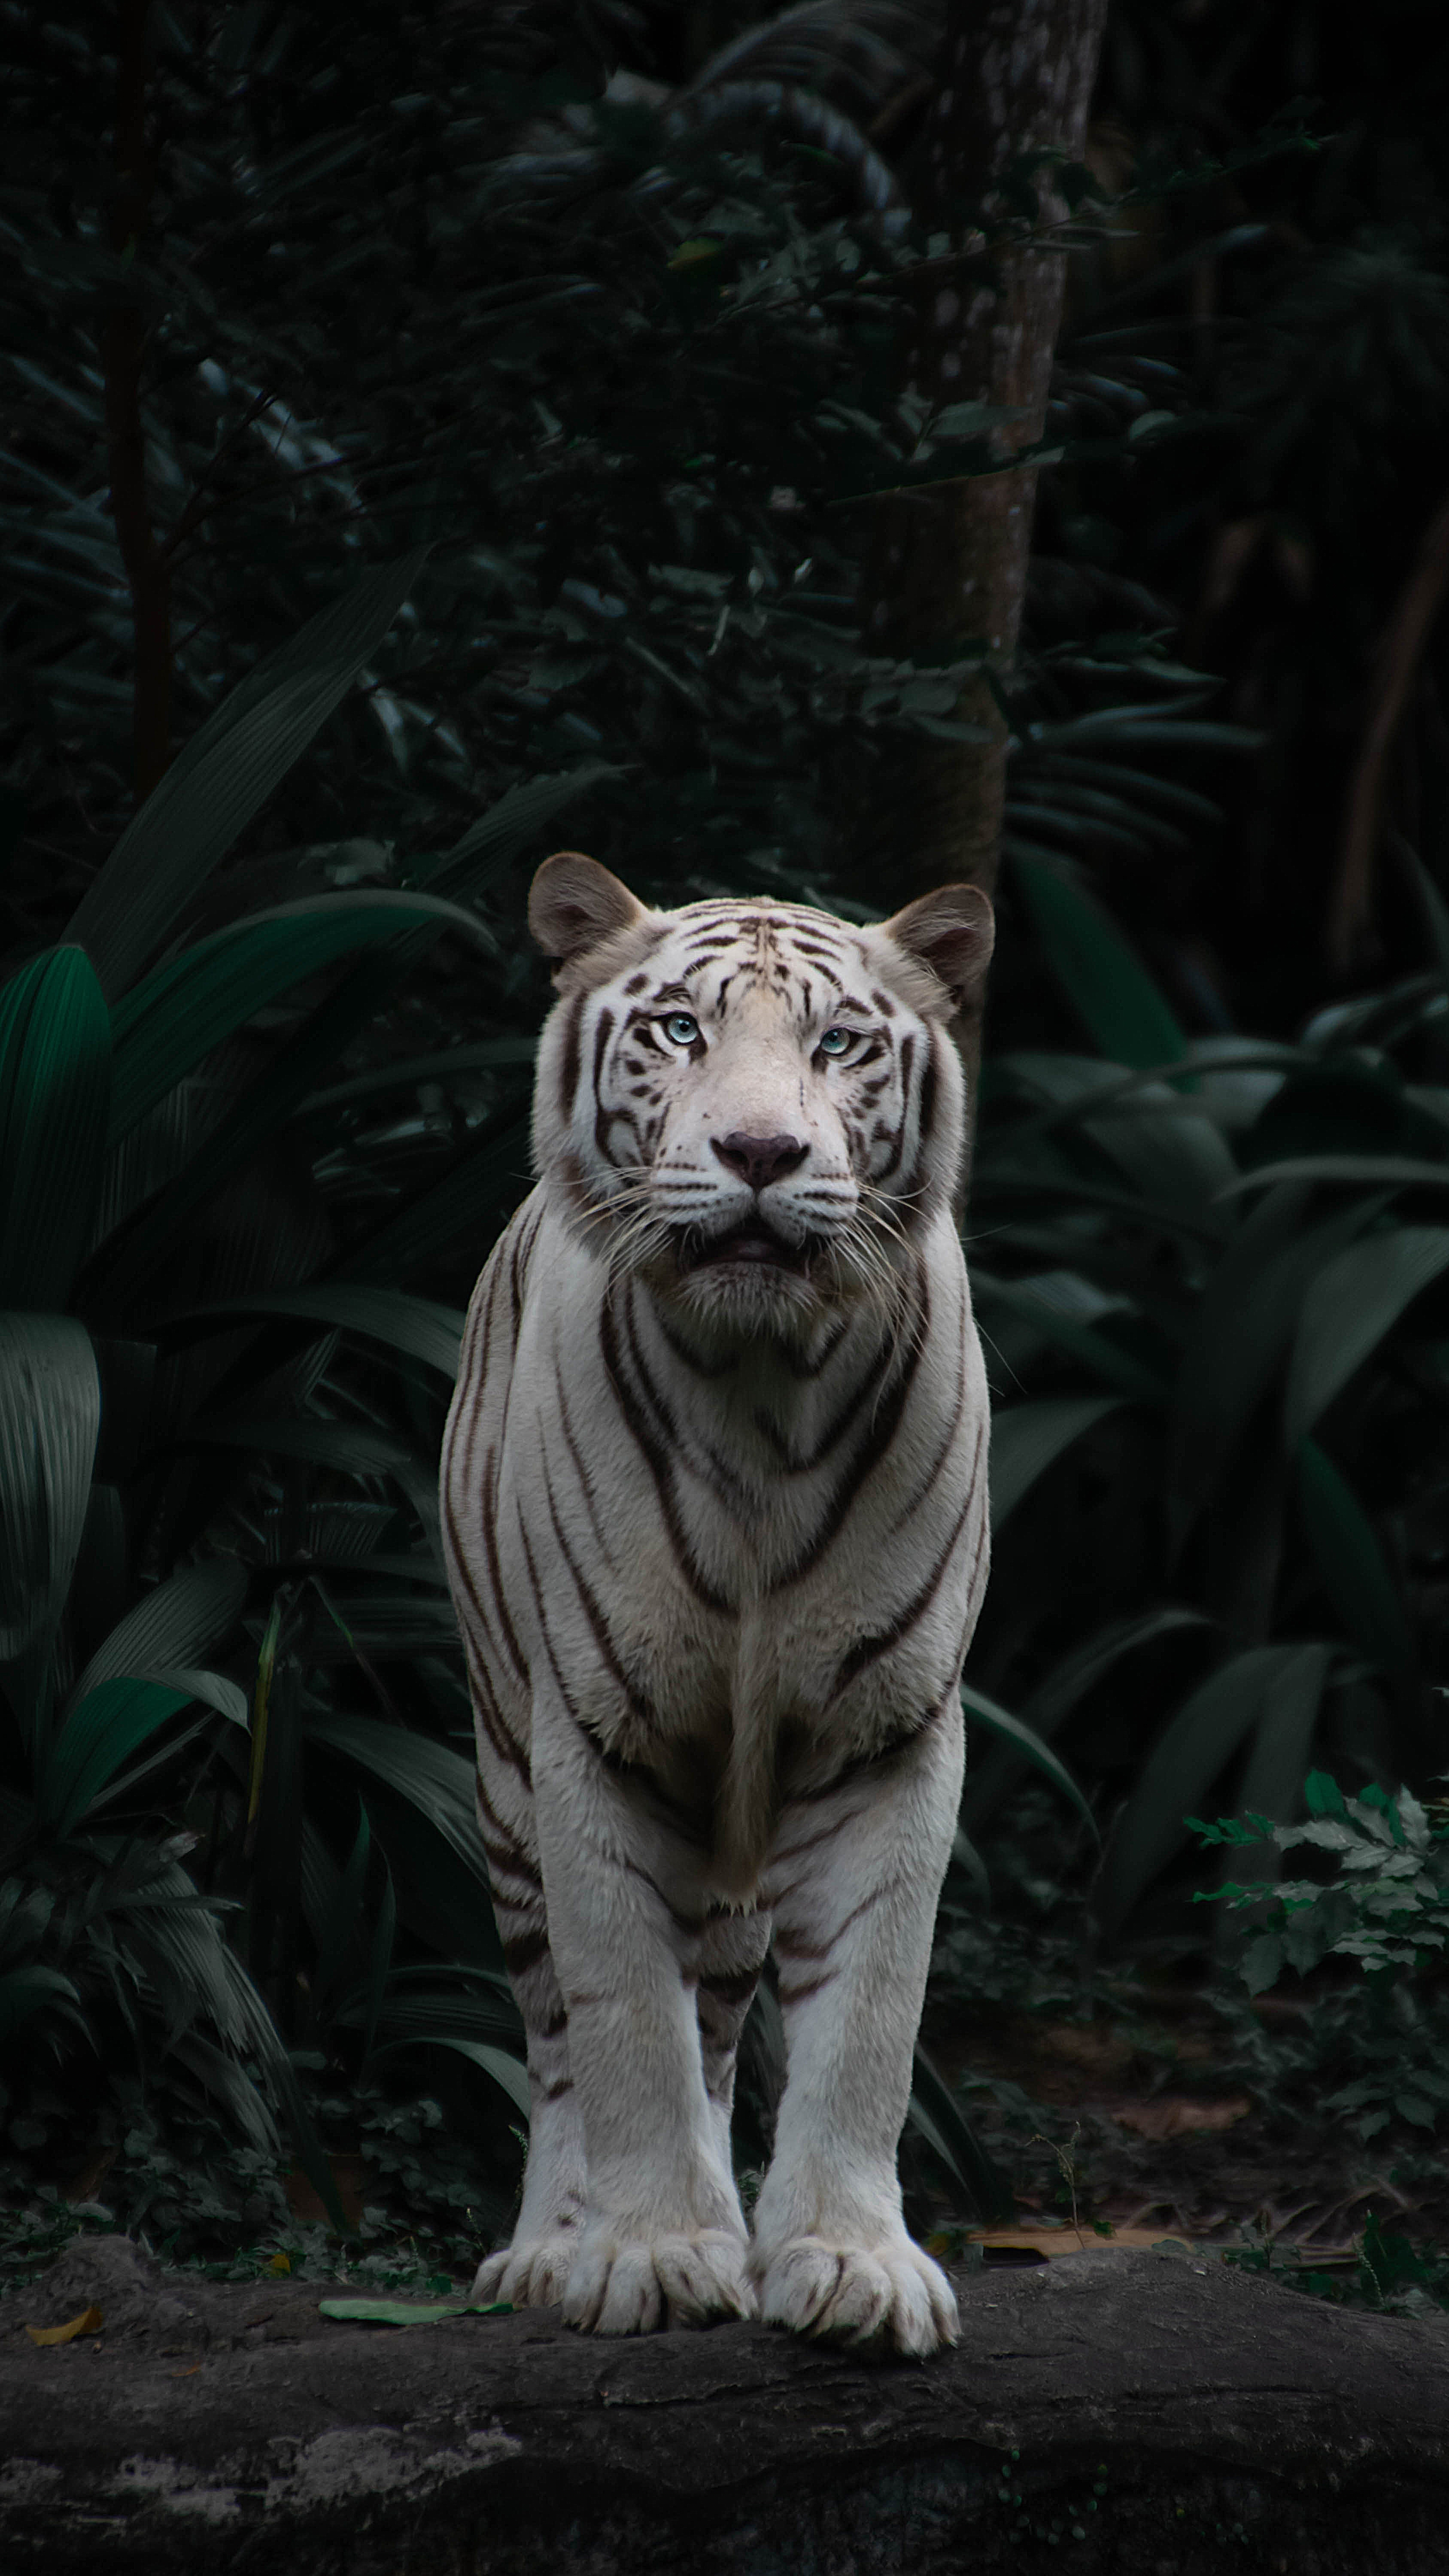 154547 download wallpaper Animals, Bengal Tiger, Tiger, Big Cat, Predator, Sight, Opinion, Bush screensavers and pictures for free